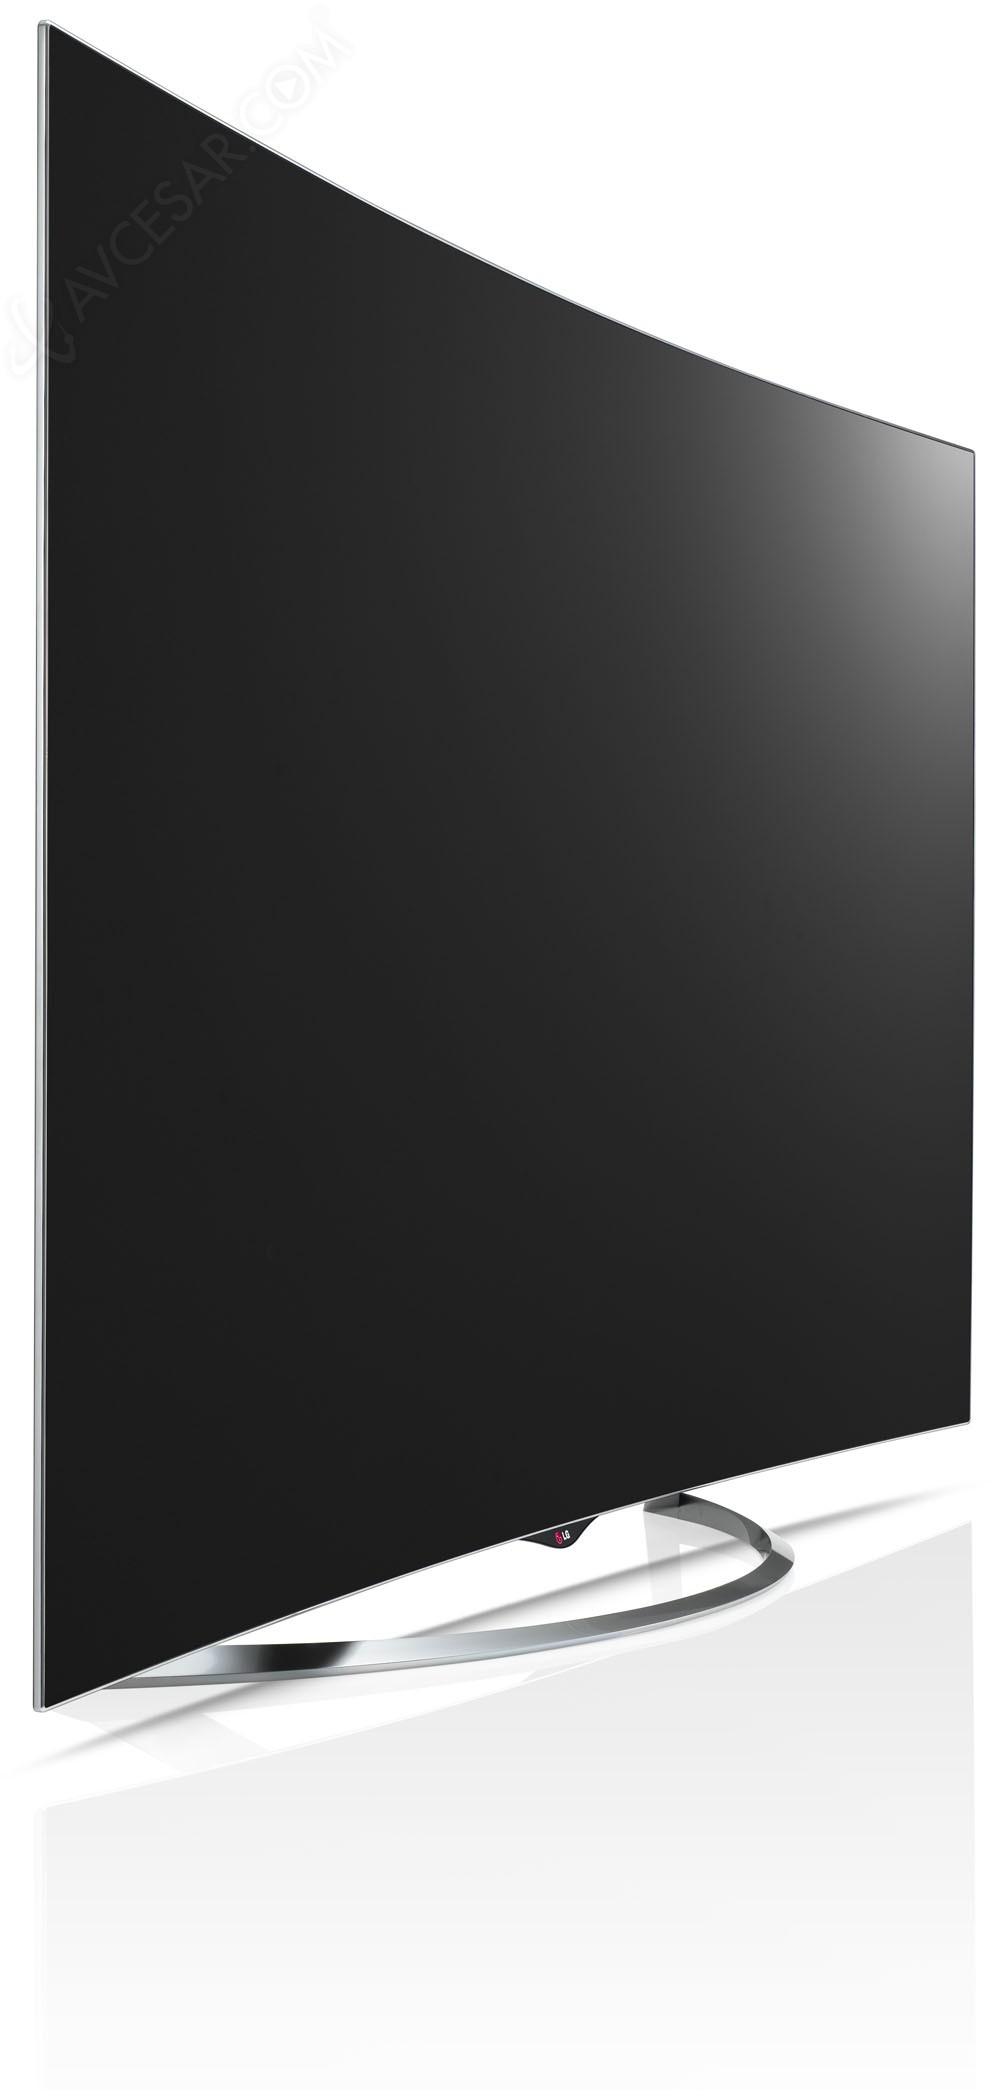 tv oled courbe lg 65ec970v mise jour prix indicatif. Black Bedroom Furniture Sets. Home Design Ideas